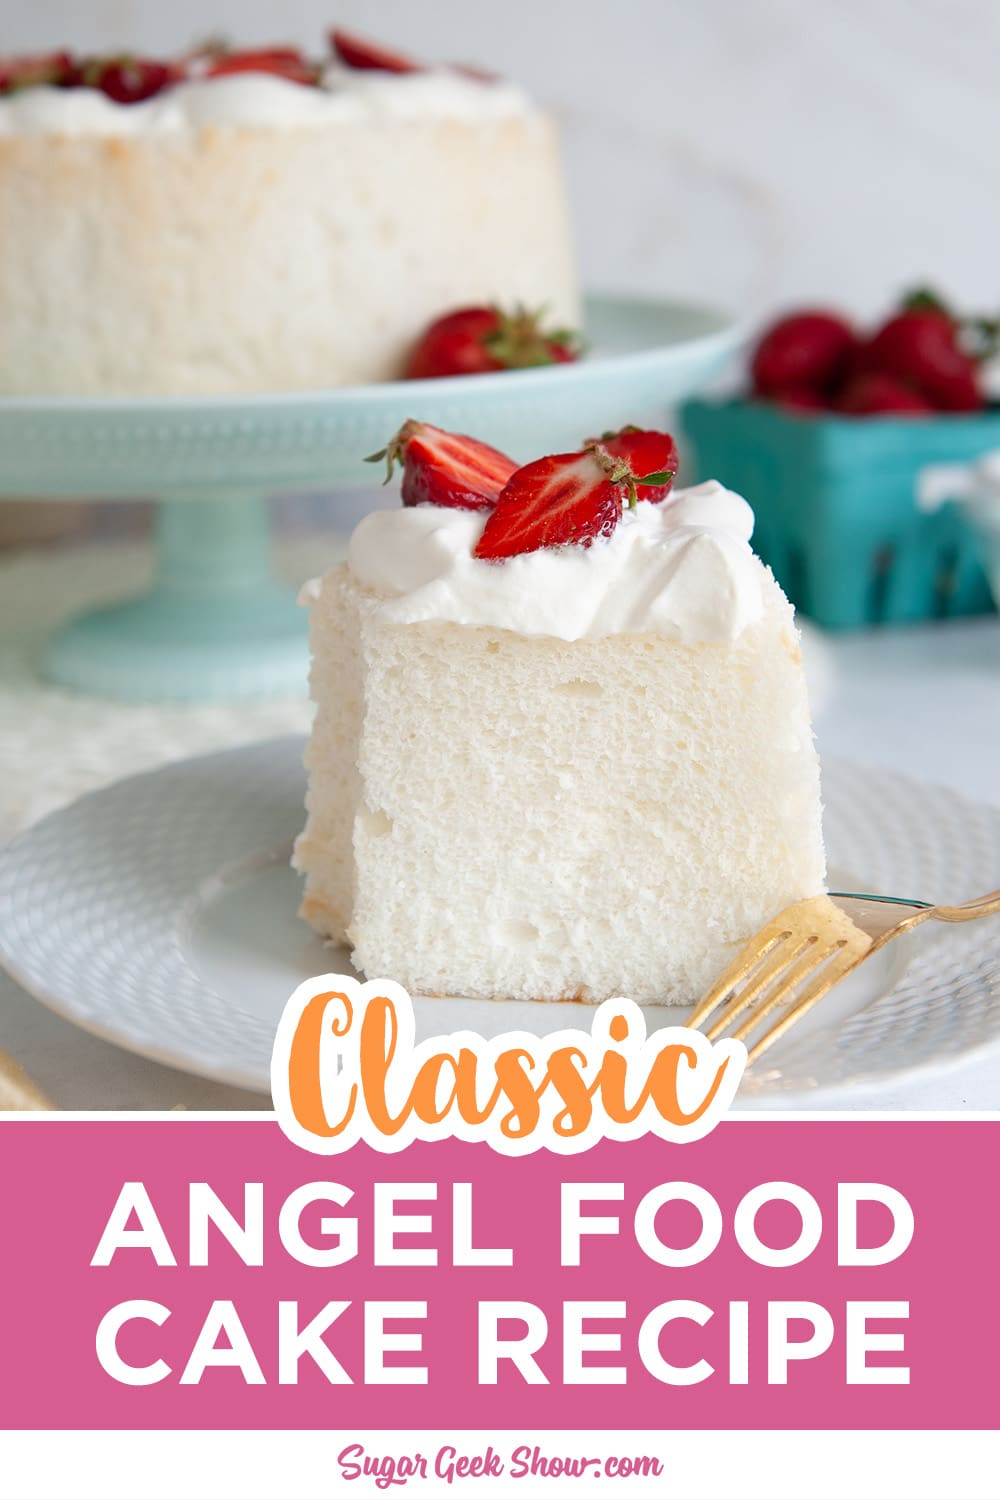 Angel Food Cake With Whipped Cream And Strawberries Sugar Geek Show Recipe In 2020 Cake Recipes Homemade Whipped Cream Angel Food